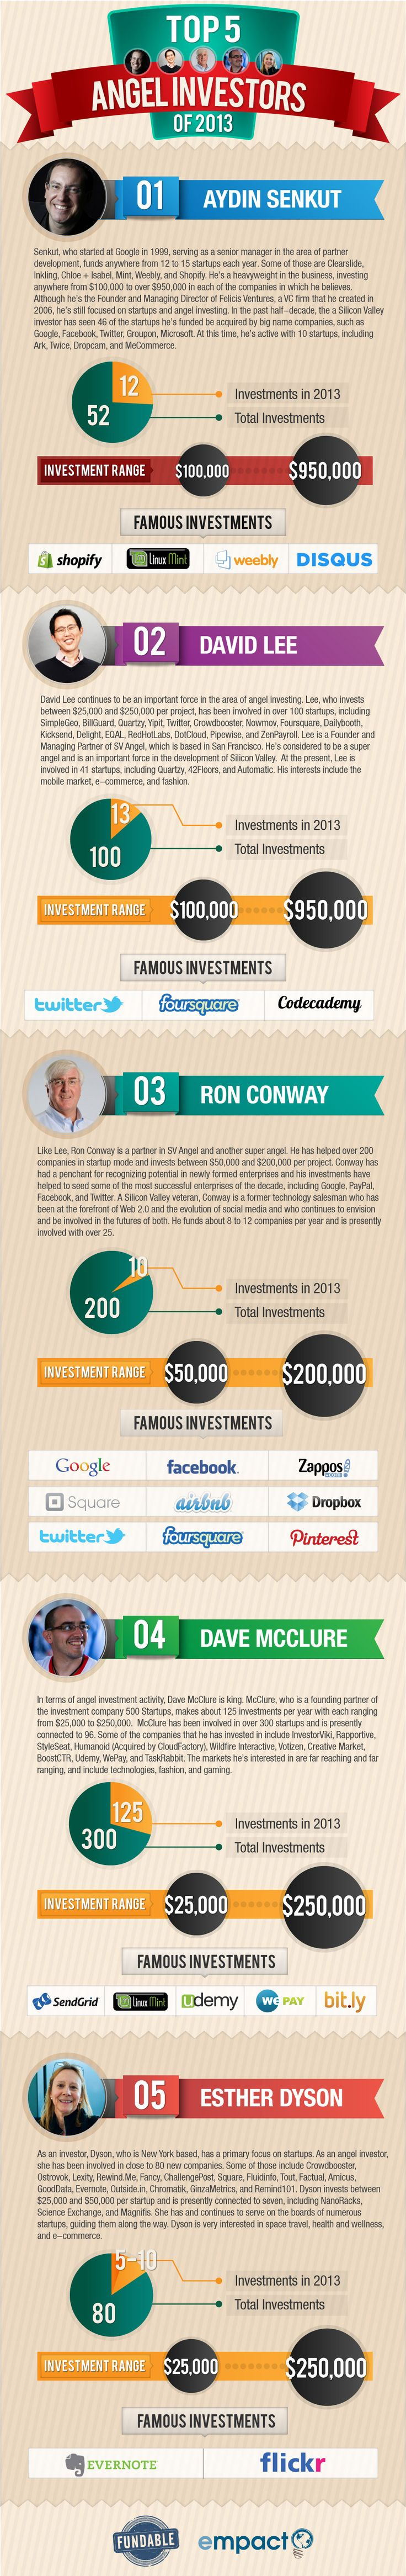 Meet the Top 5 Angel Investors of 2013 (Infographic)